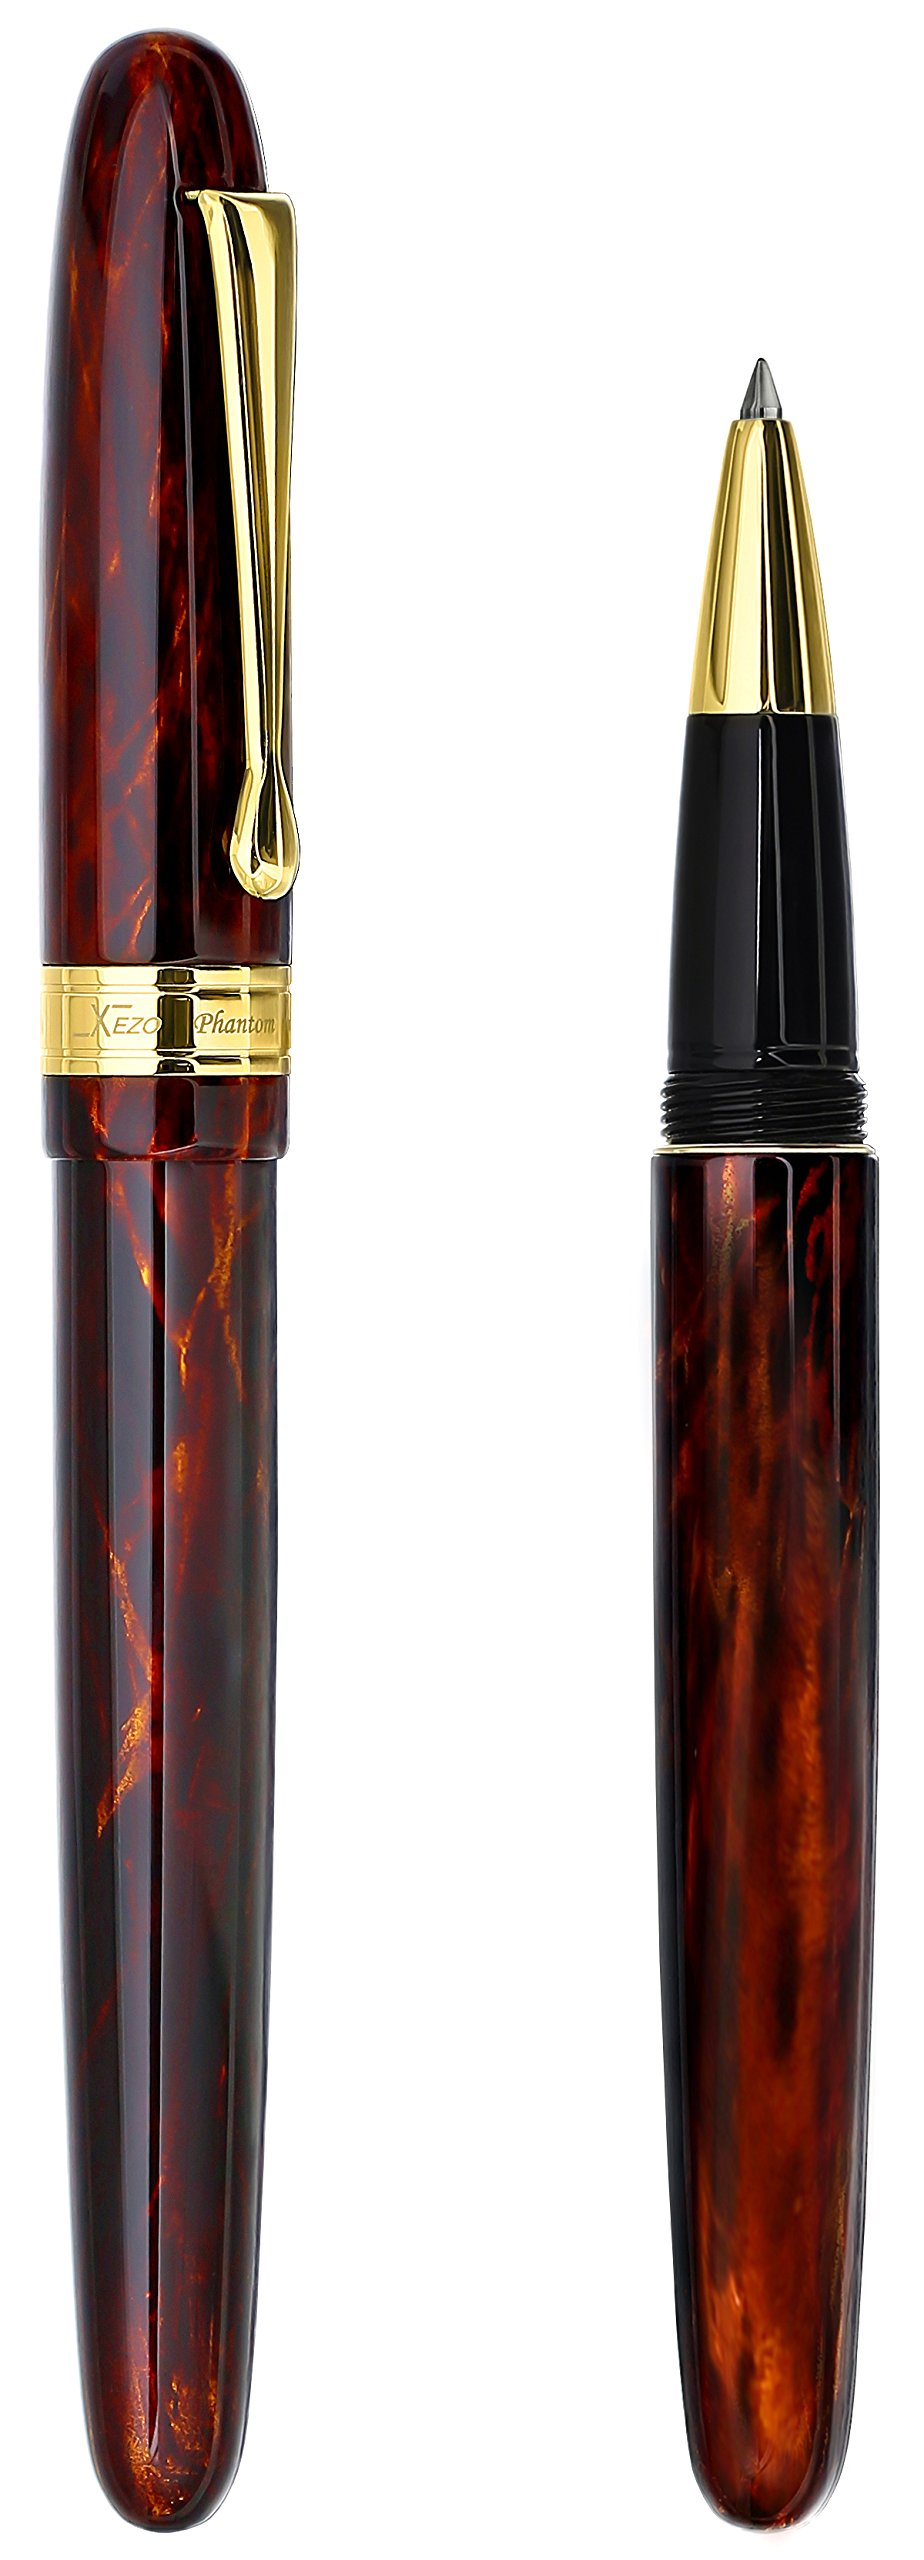 Xezo Phantom Rollerball Pen. Limited-edition of 500. Individually Numbered. Screw-on cap. 18-Karat Gold Plated. Triple Layer of Translucent Coating by Xezo (Image #2)